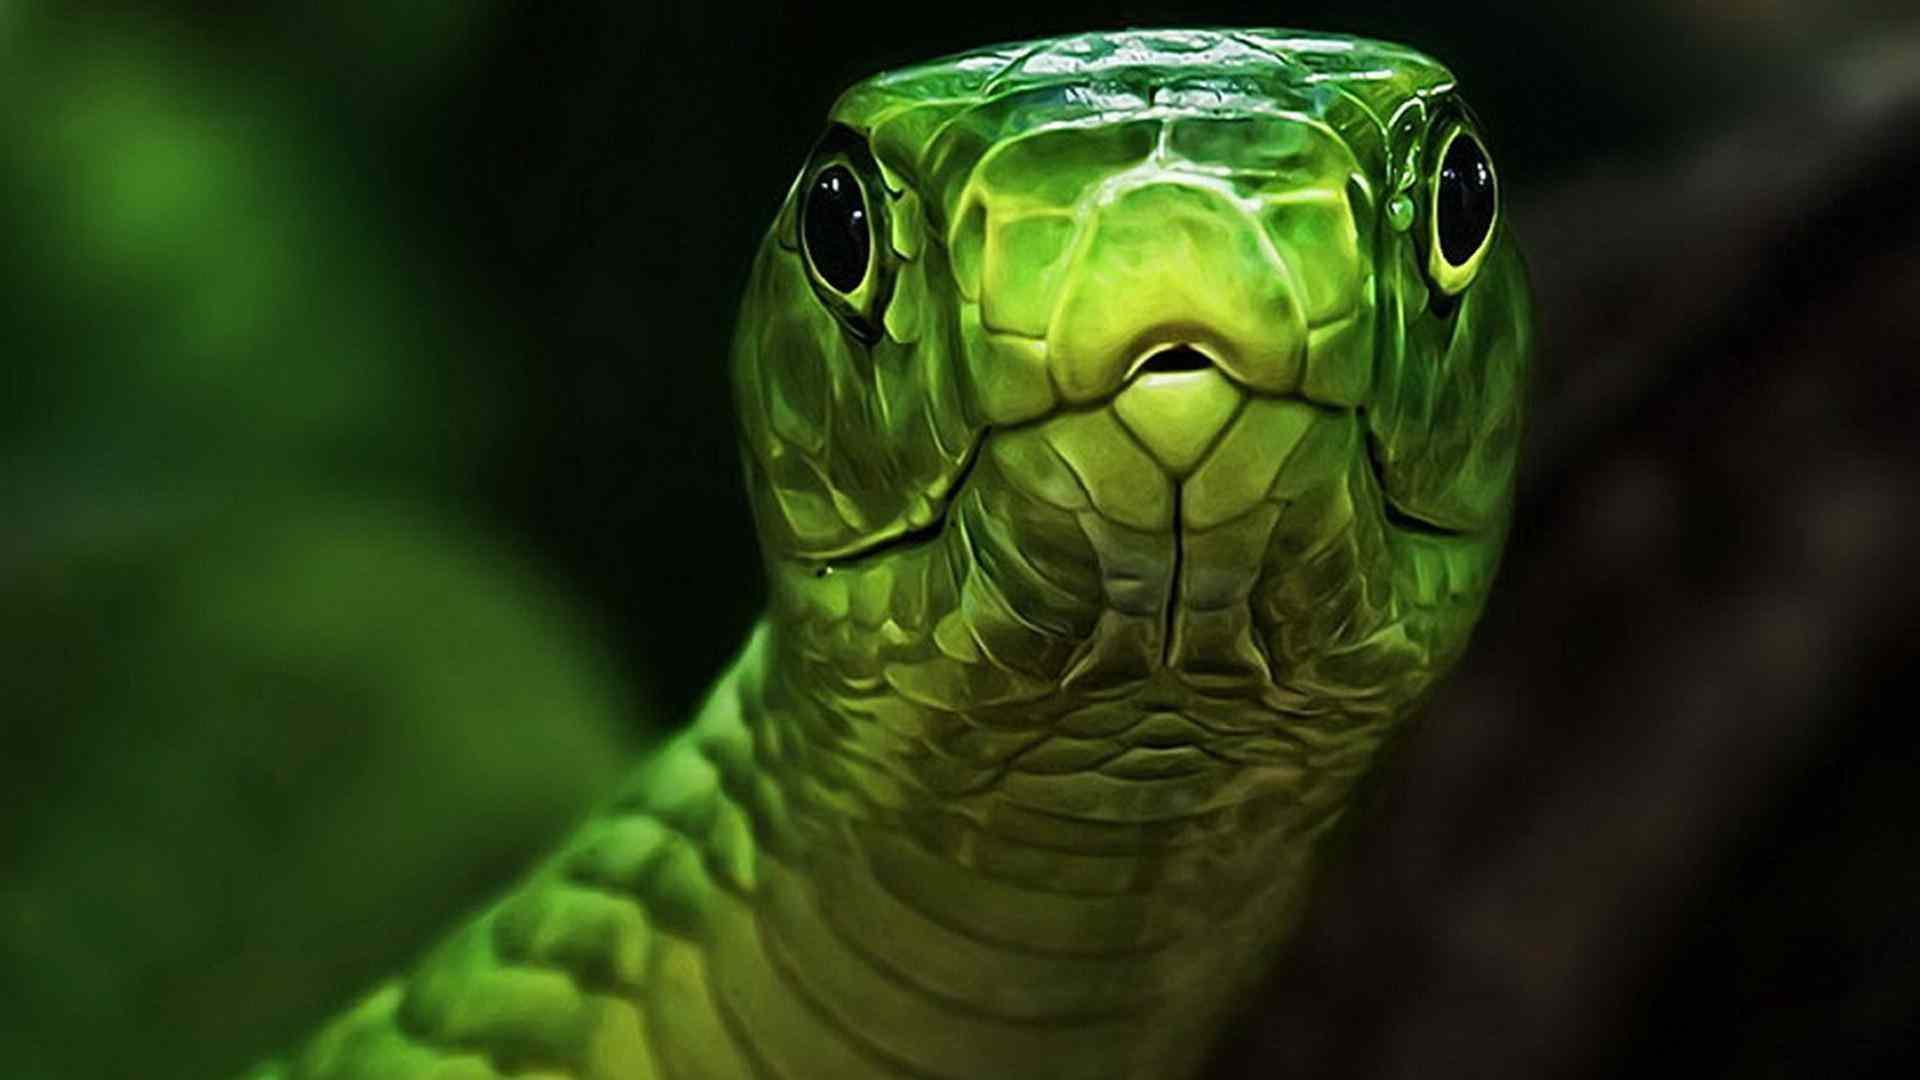 Image of an anaconda snake download